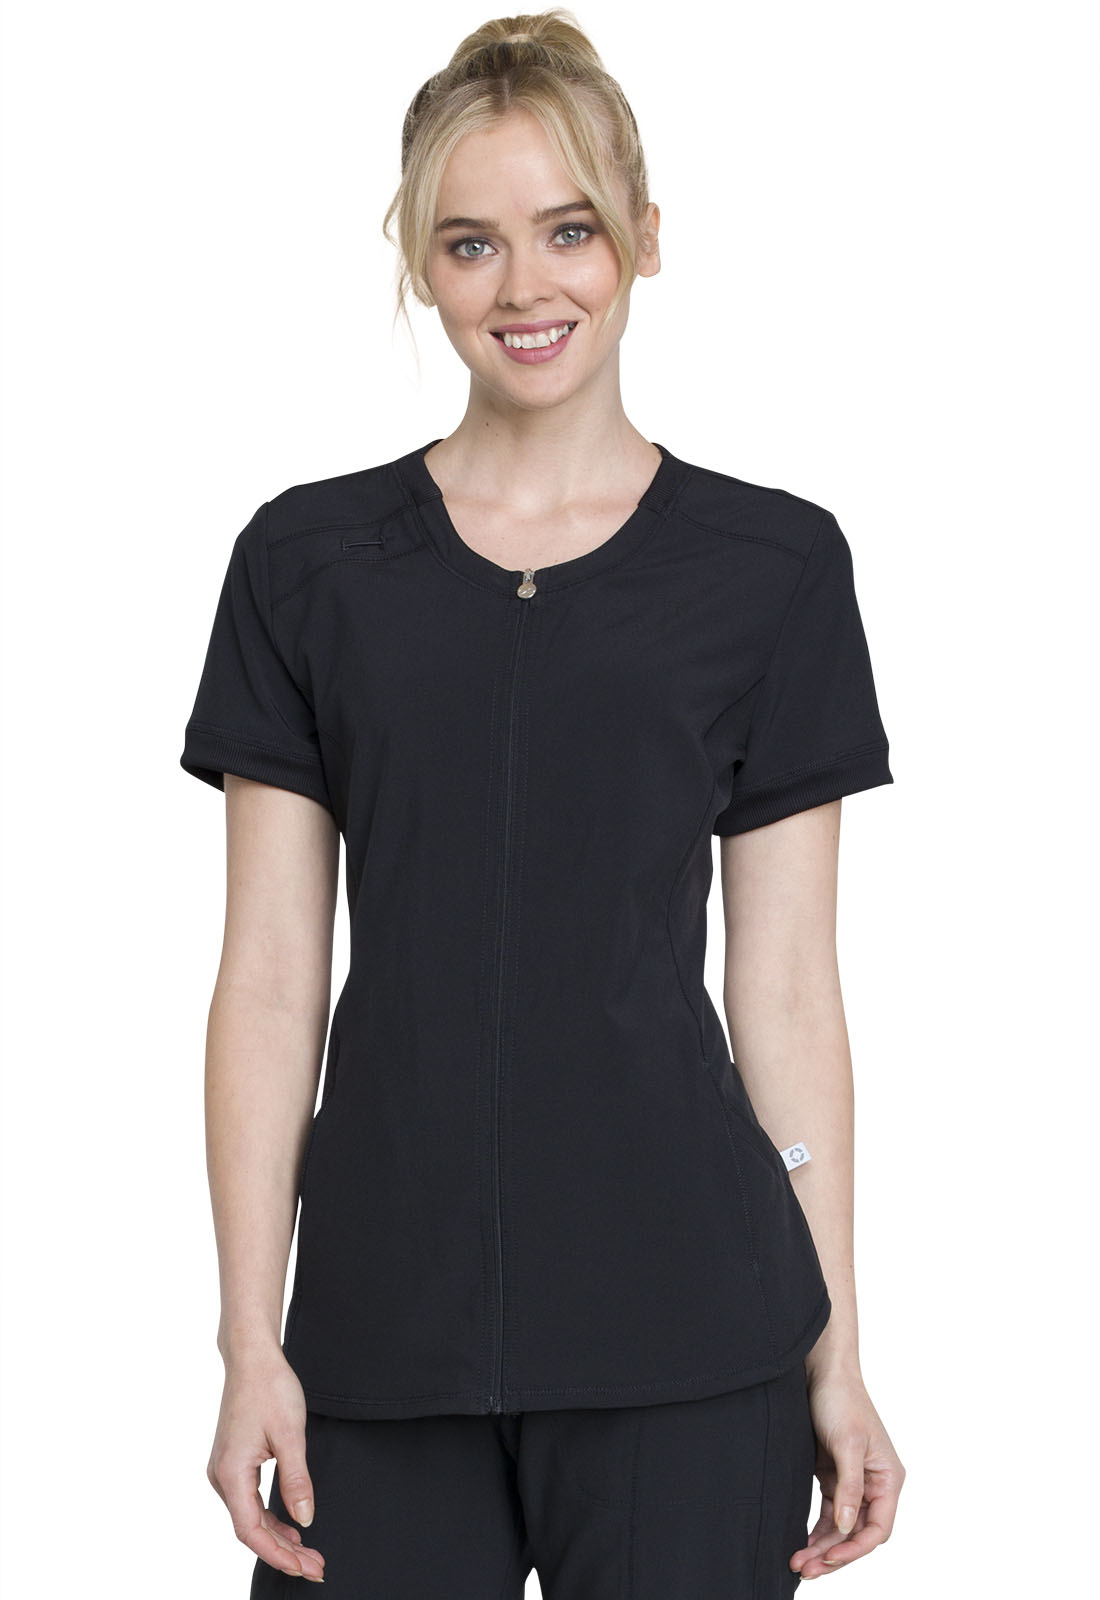 7346dfb790c Infinity Zip Front V-Neck Top in Black CK810A-BAPS from The Nurses ...